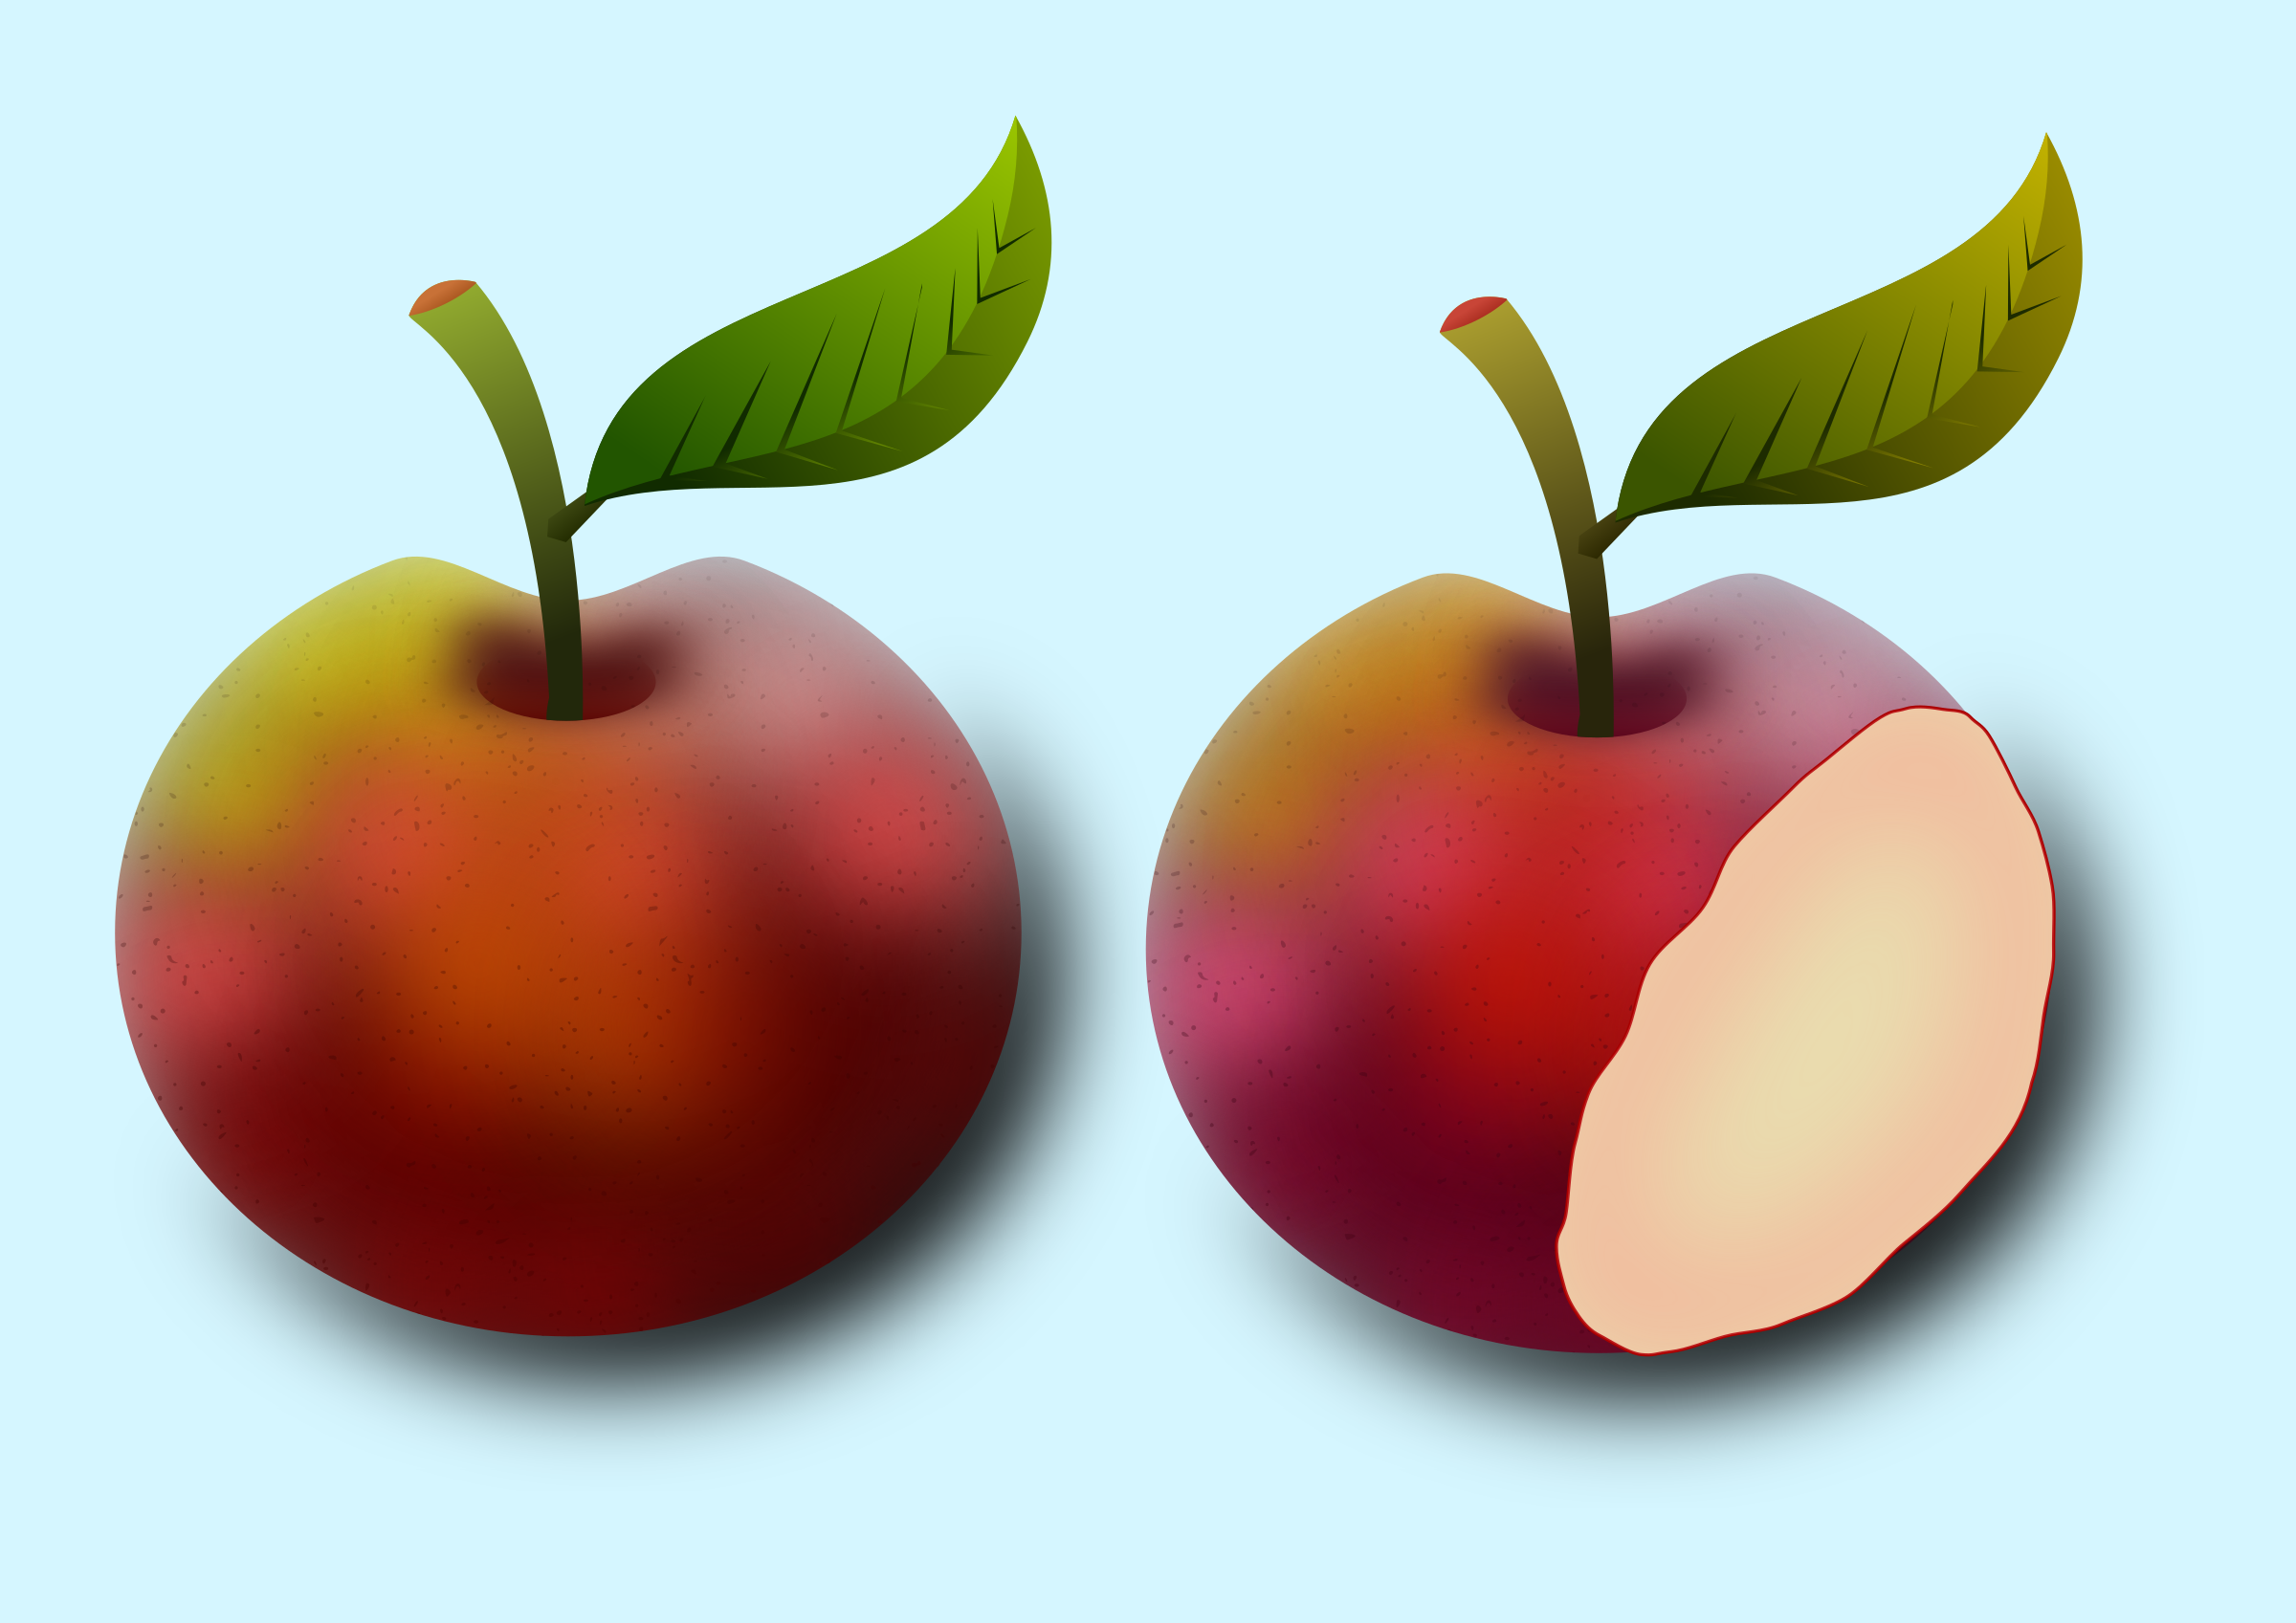 Two apples by Almeidah